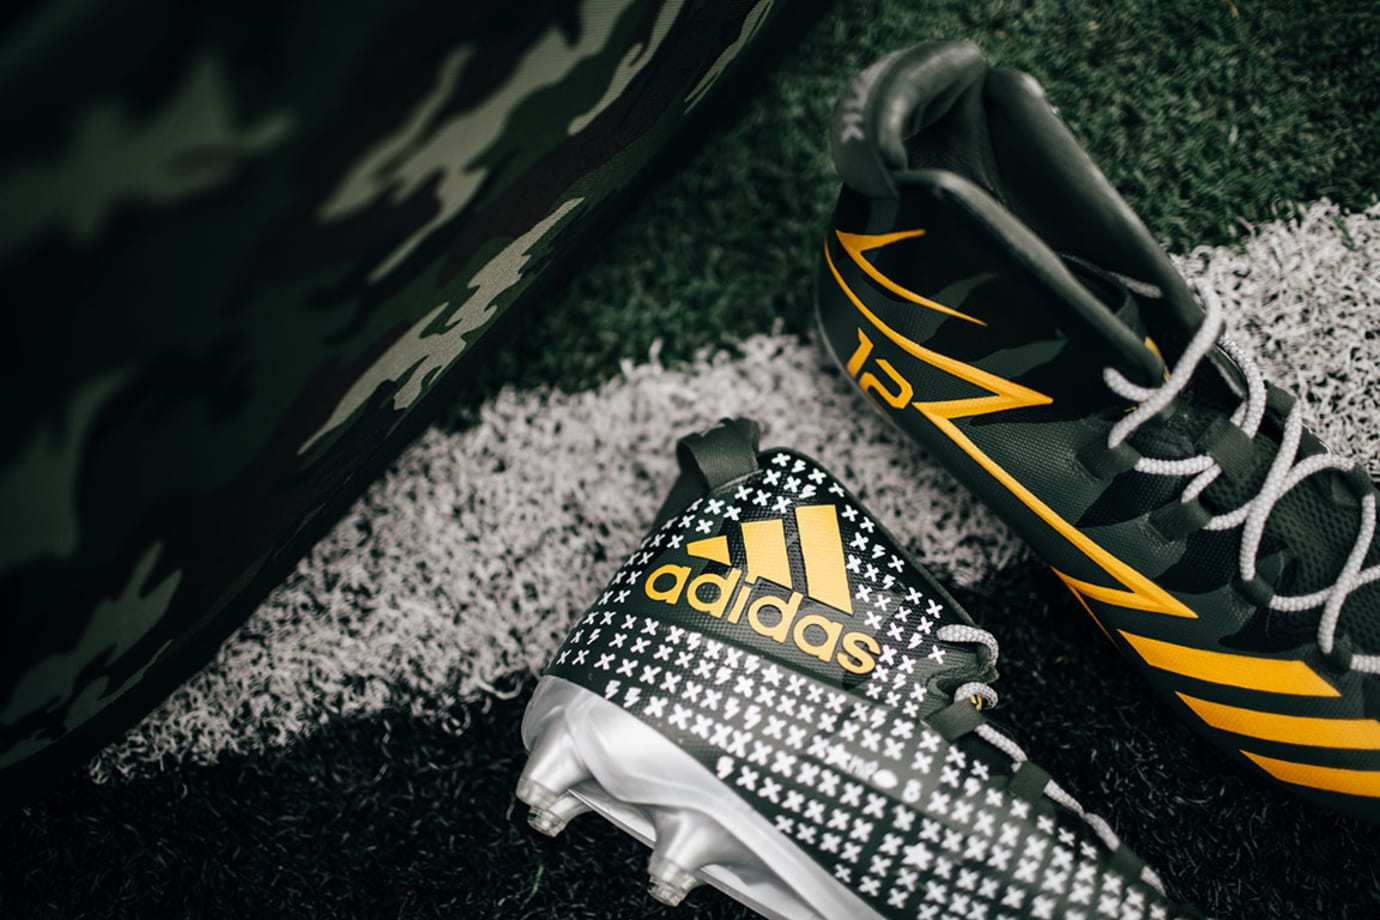 Adidas Call of Duty Cleats Aaron Rodgers